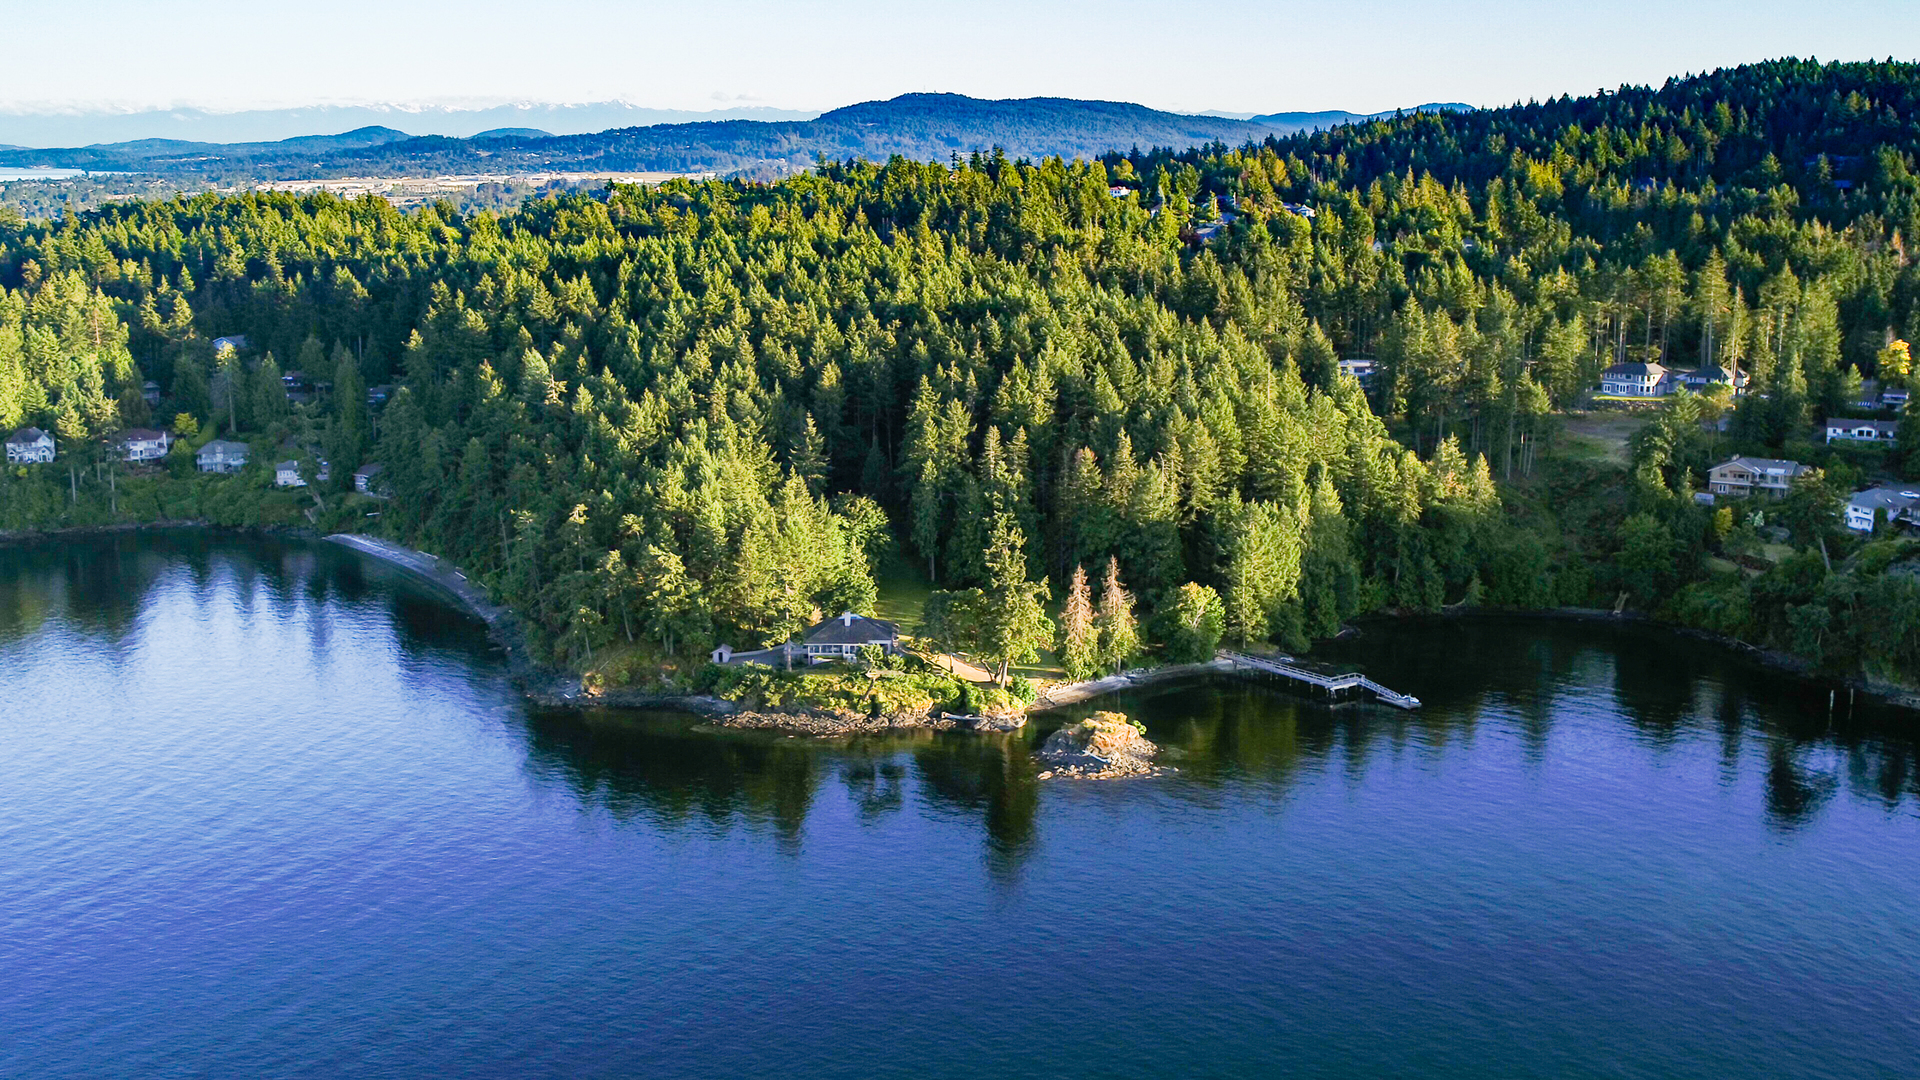 Nearly 25 Acres Of Developable Land at 1850 Lands End Road, Lands End, North Saanich